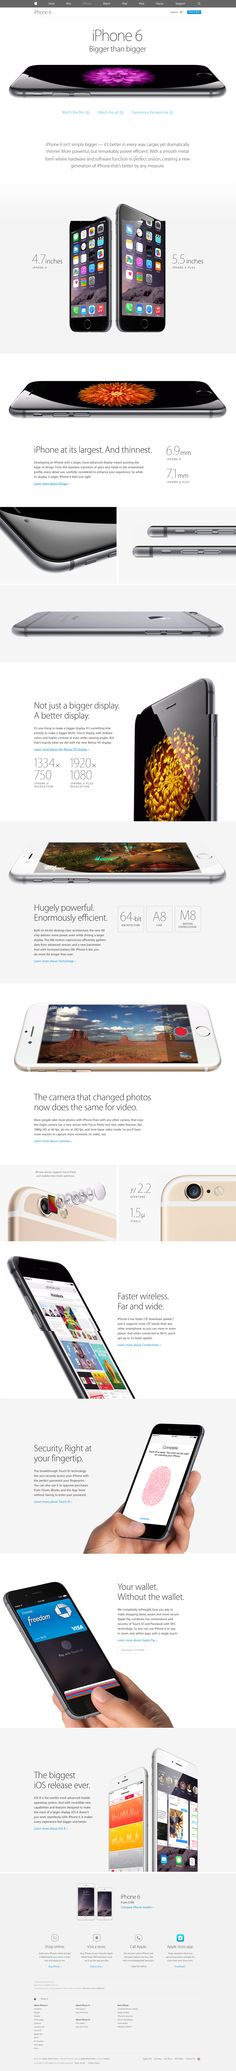 iPhone 6 and 6 plus #ui #web #interface